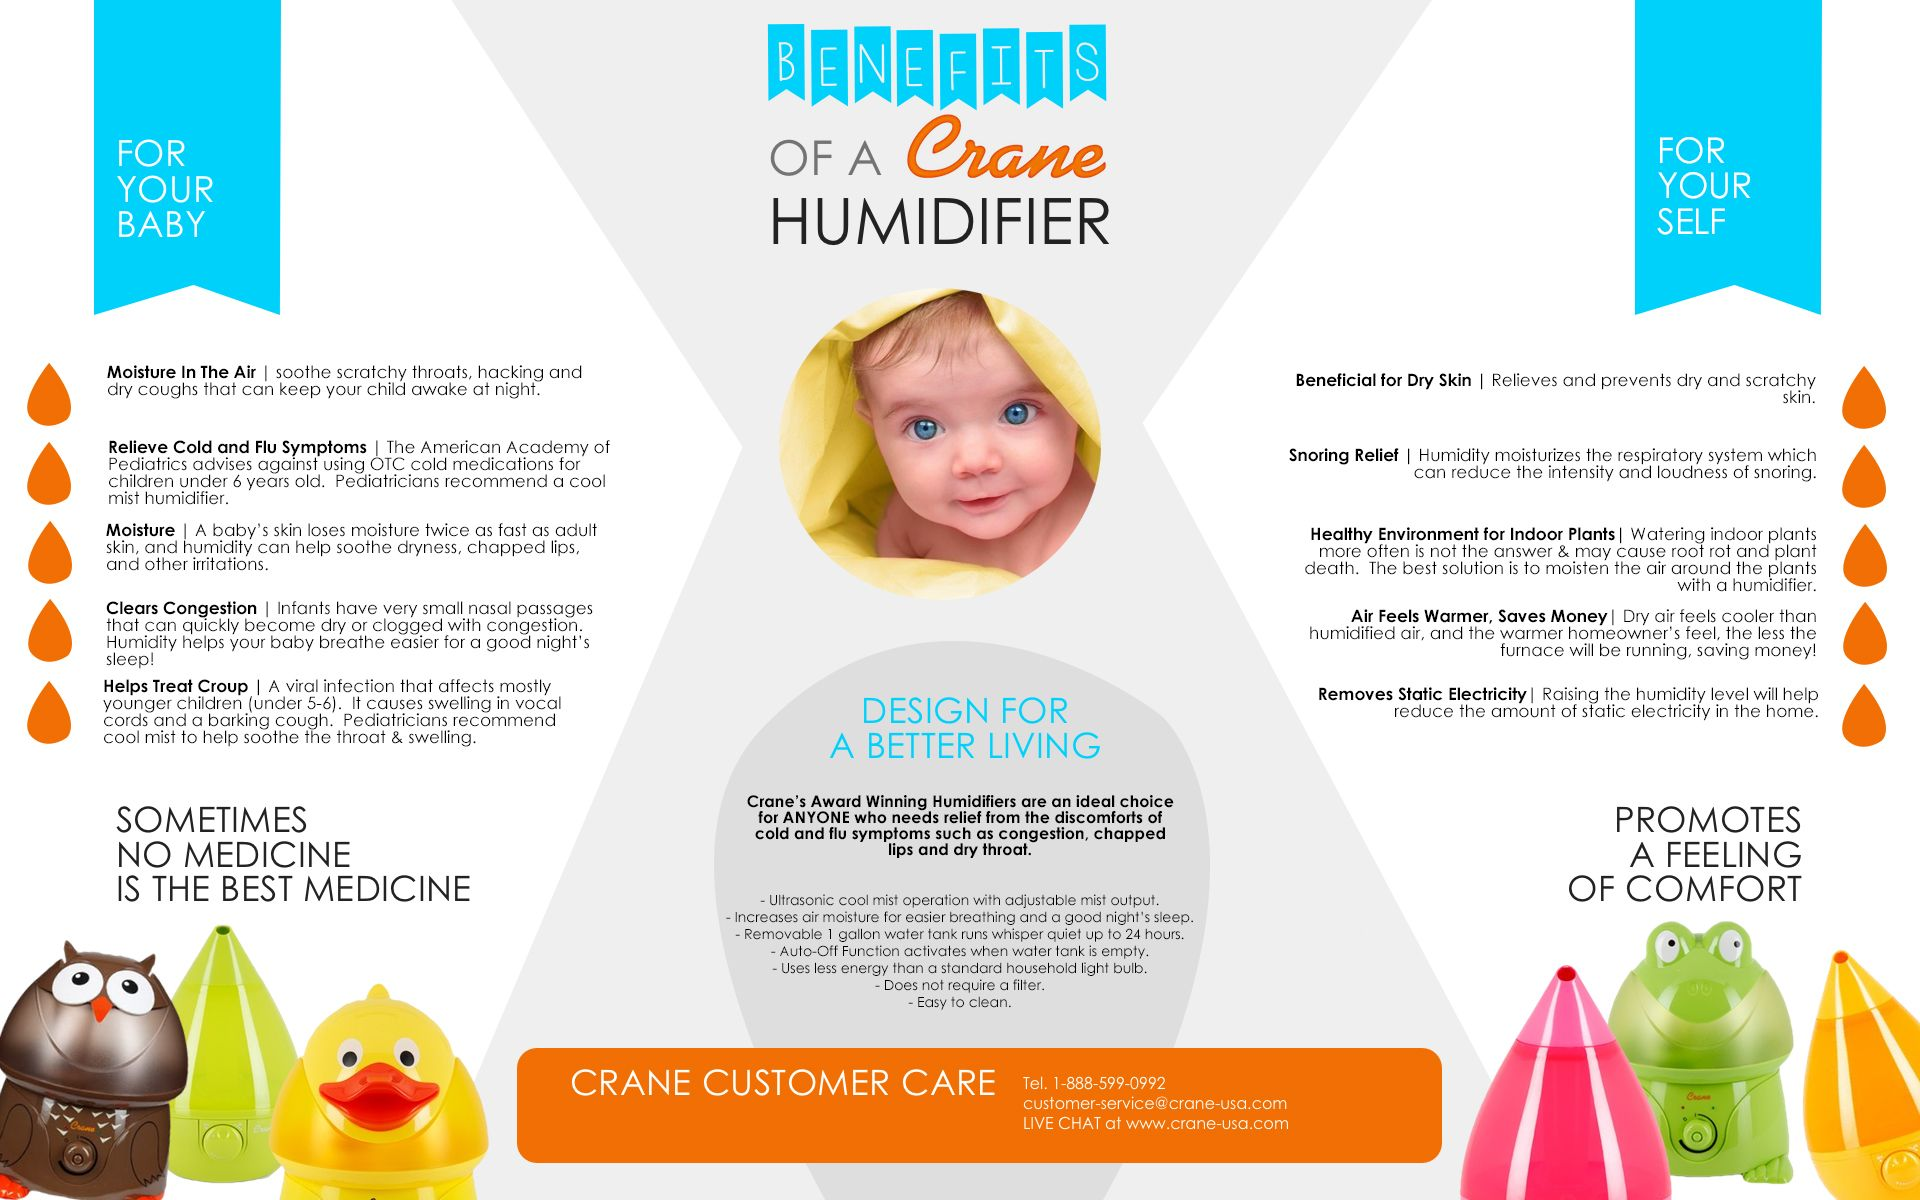 Crane Usa Humidifier Infographic Instructographic Benefits Of